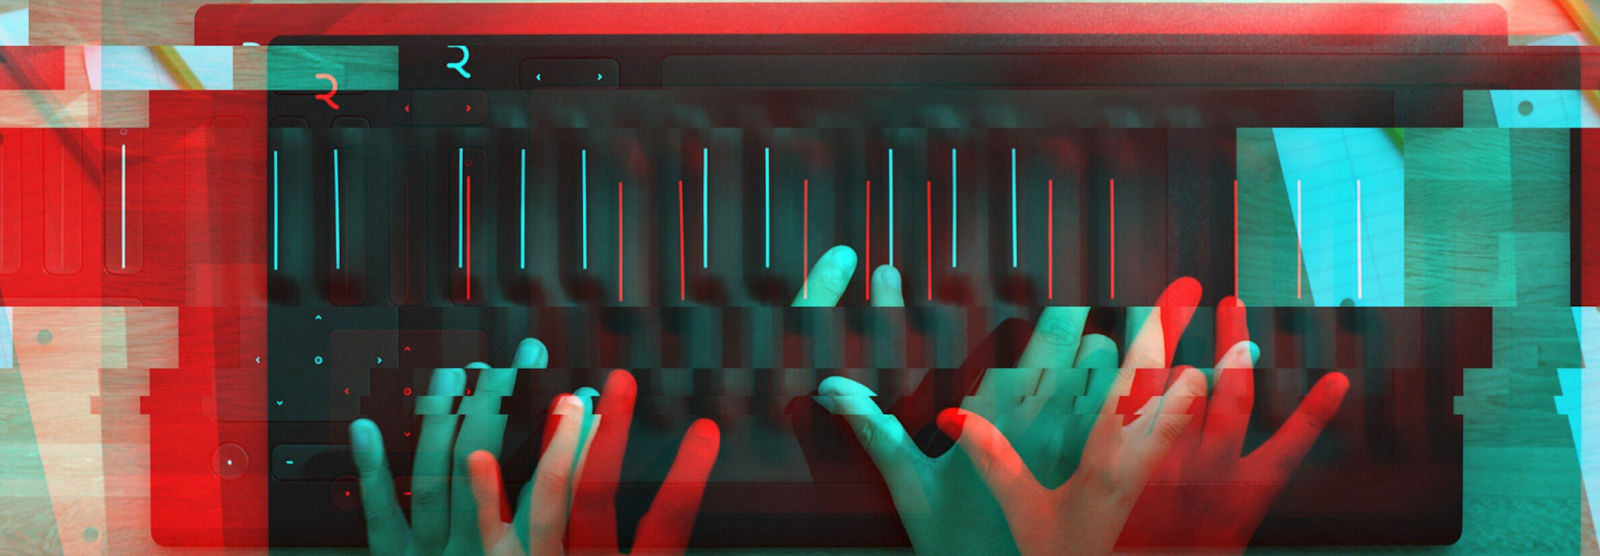 ROLI's Seaboard RISE 25, a well-known MPE-enabled controller